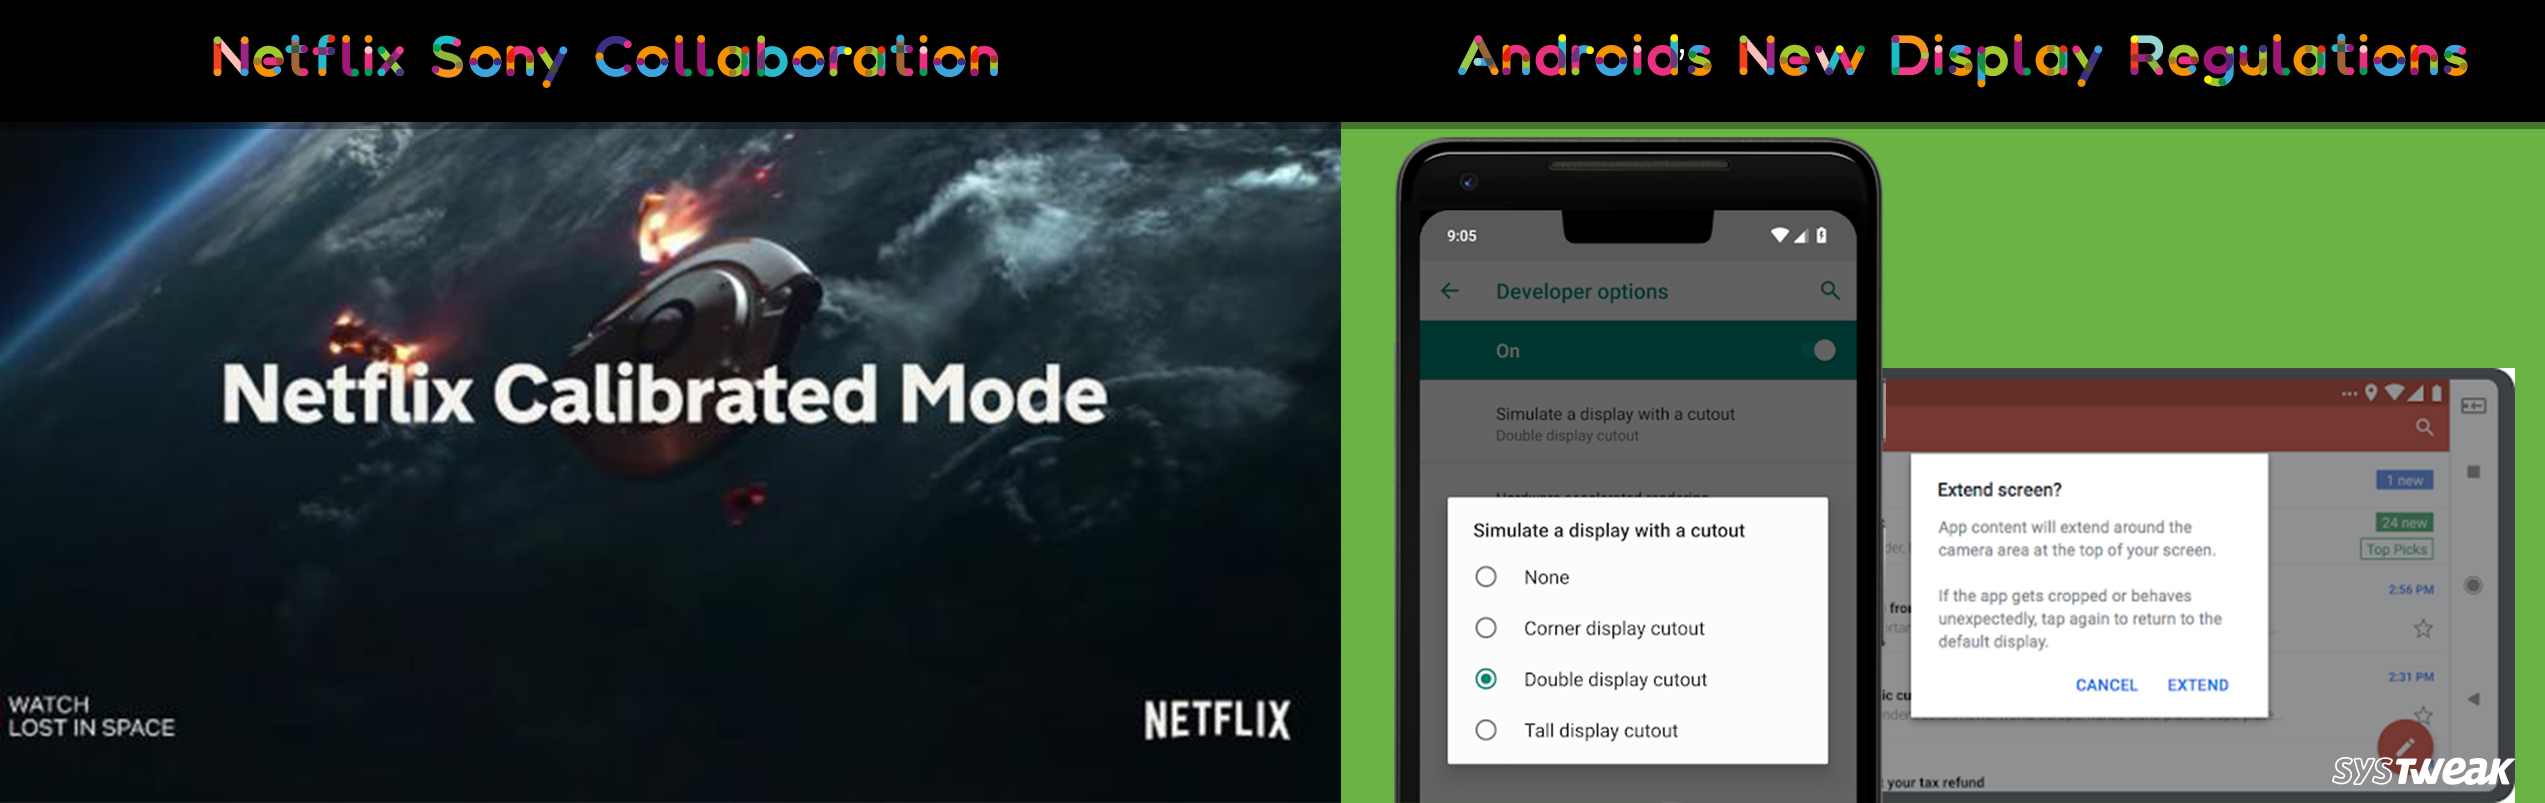 Newsletter: Netflix And Sony Join Forces & Android Display Cutout Guidelines